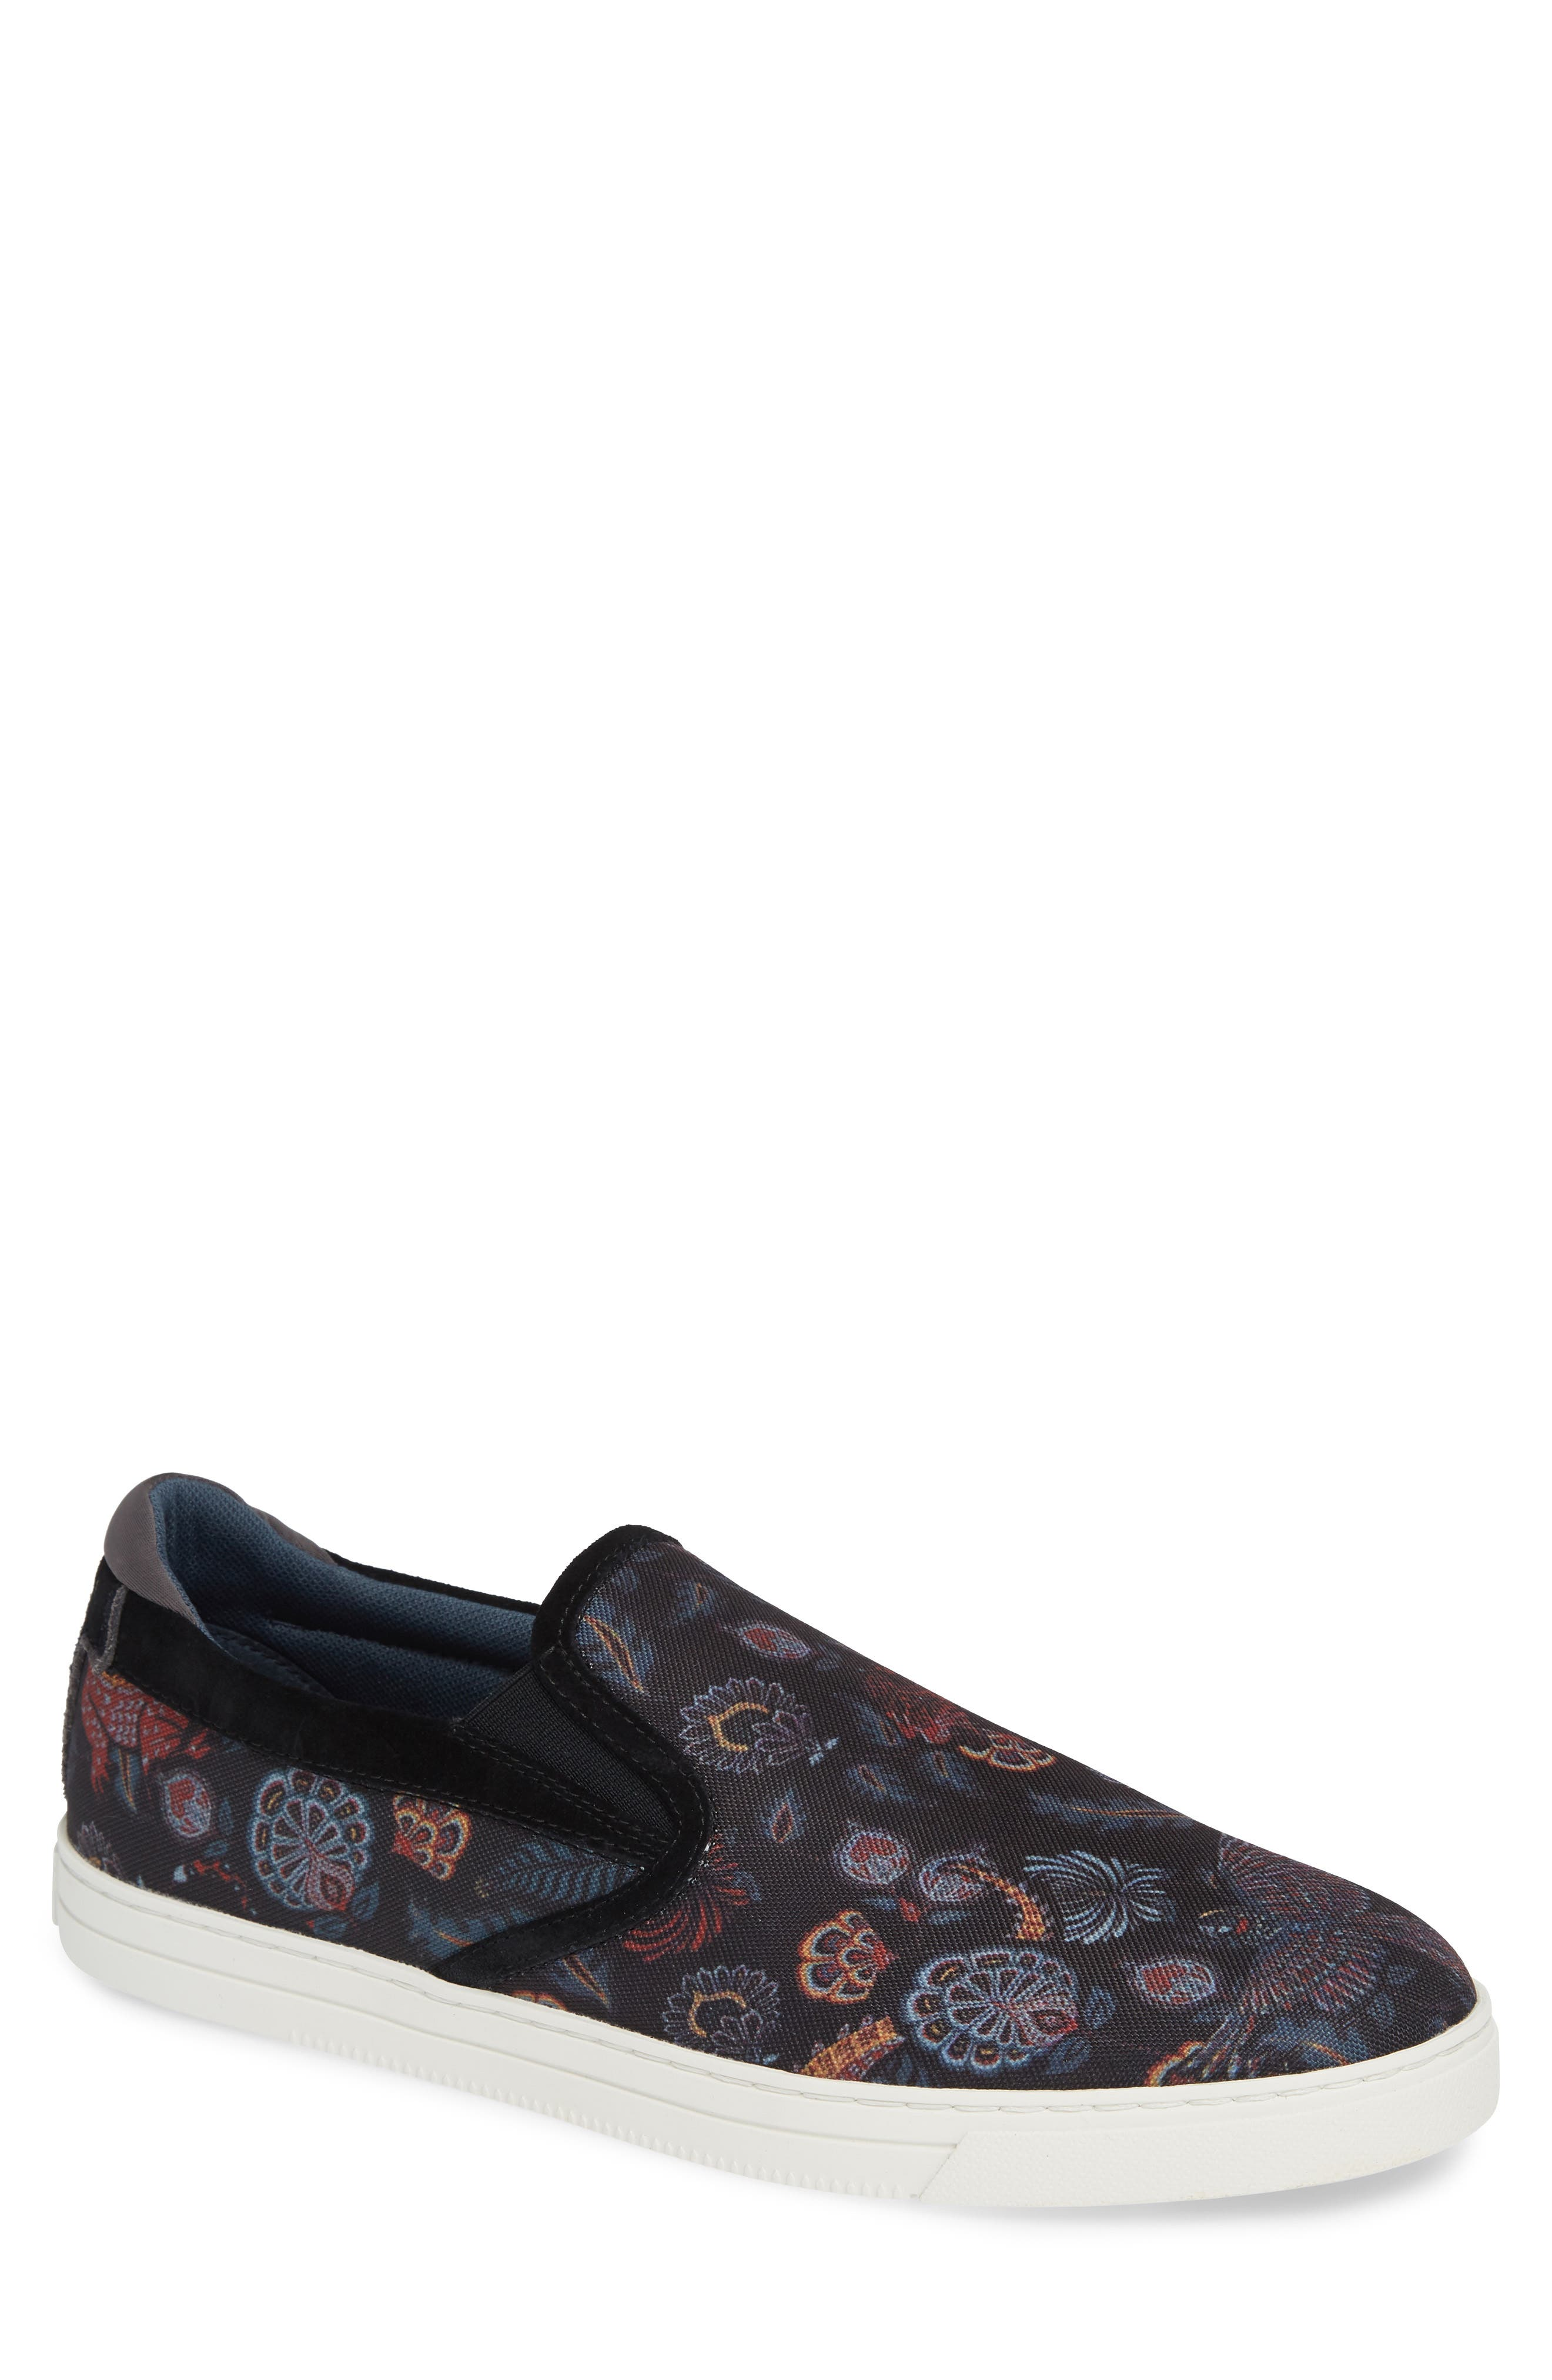 Ted Baker London Mhako Slip-On Sneaker, Black